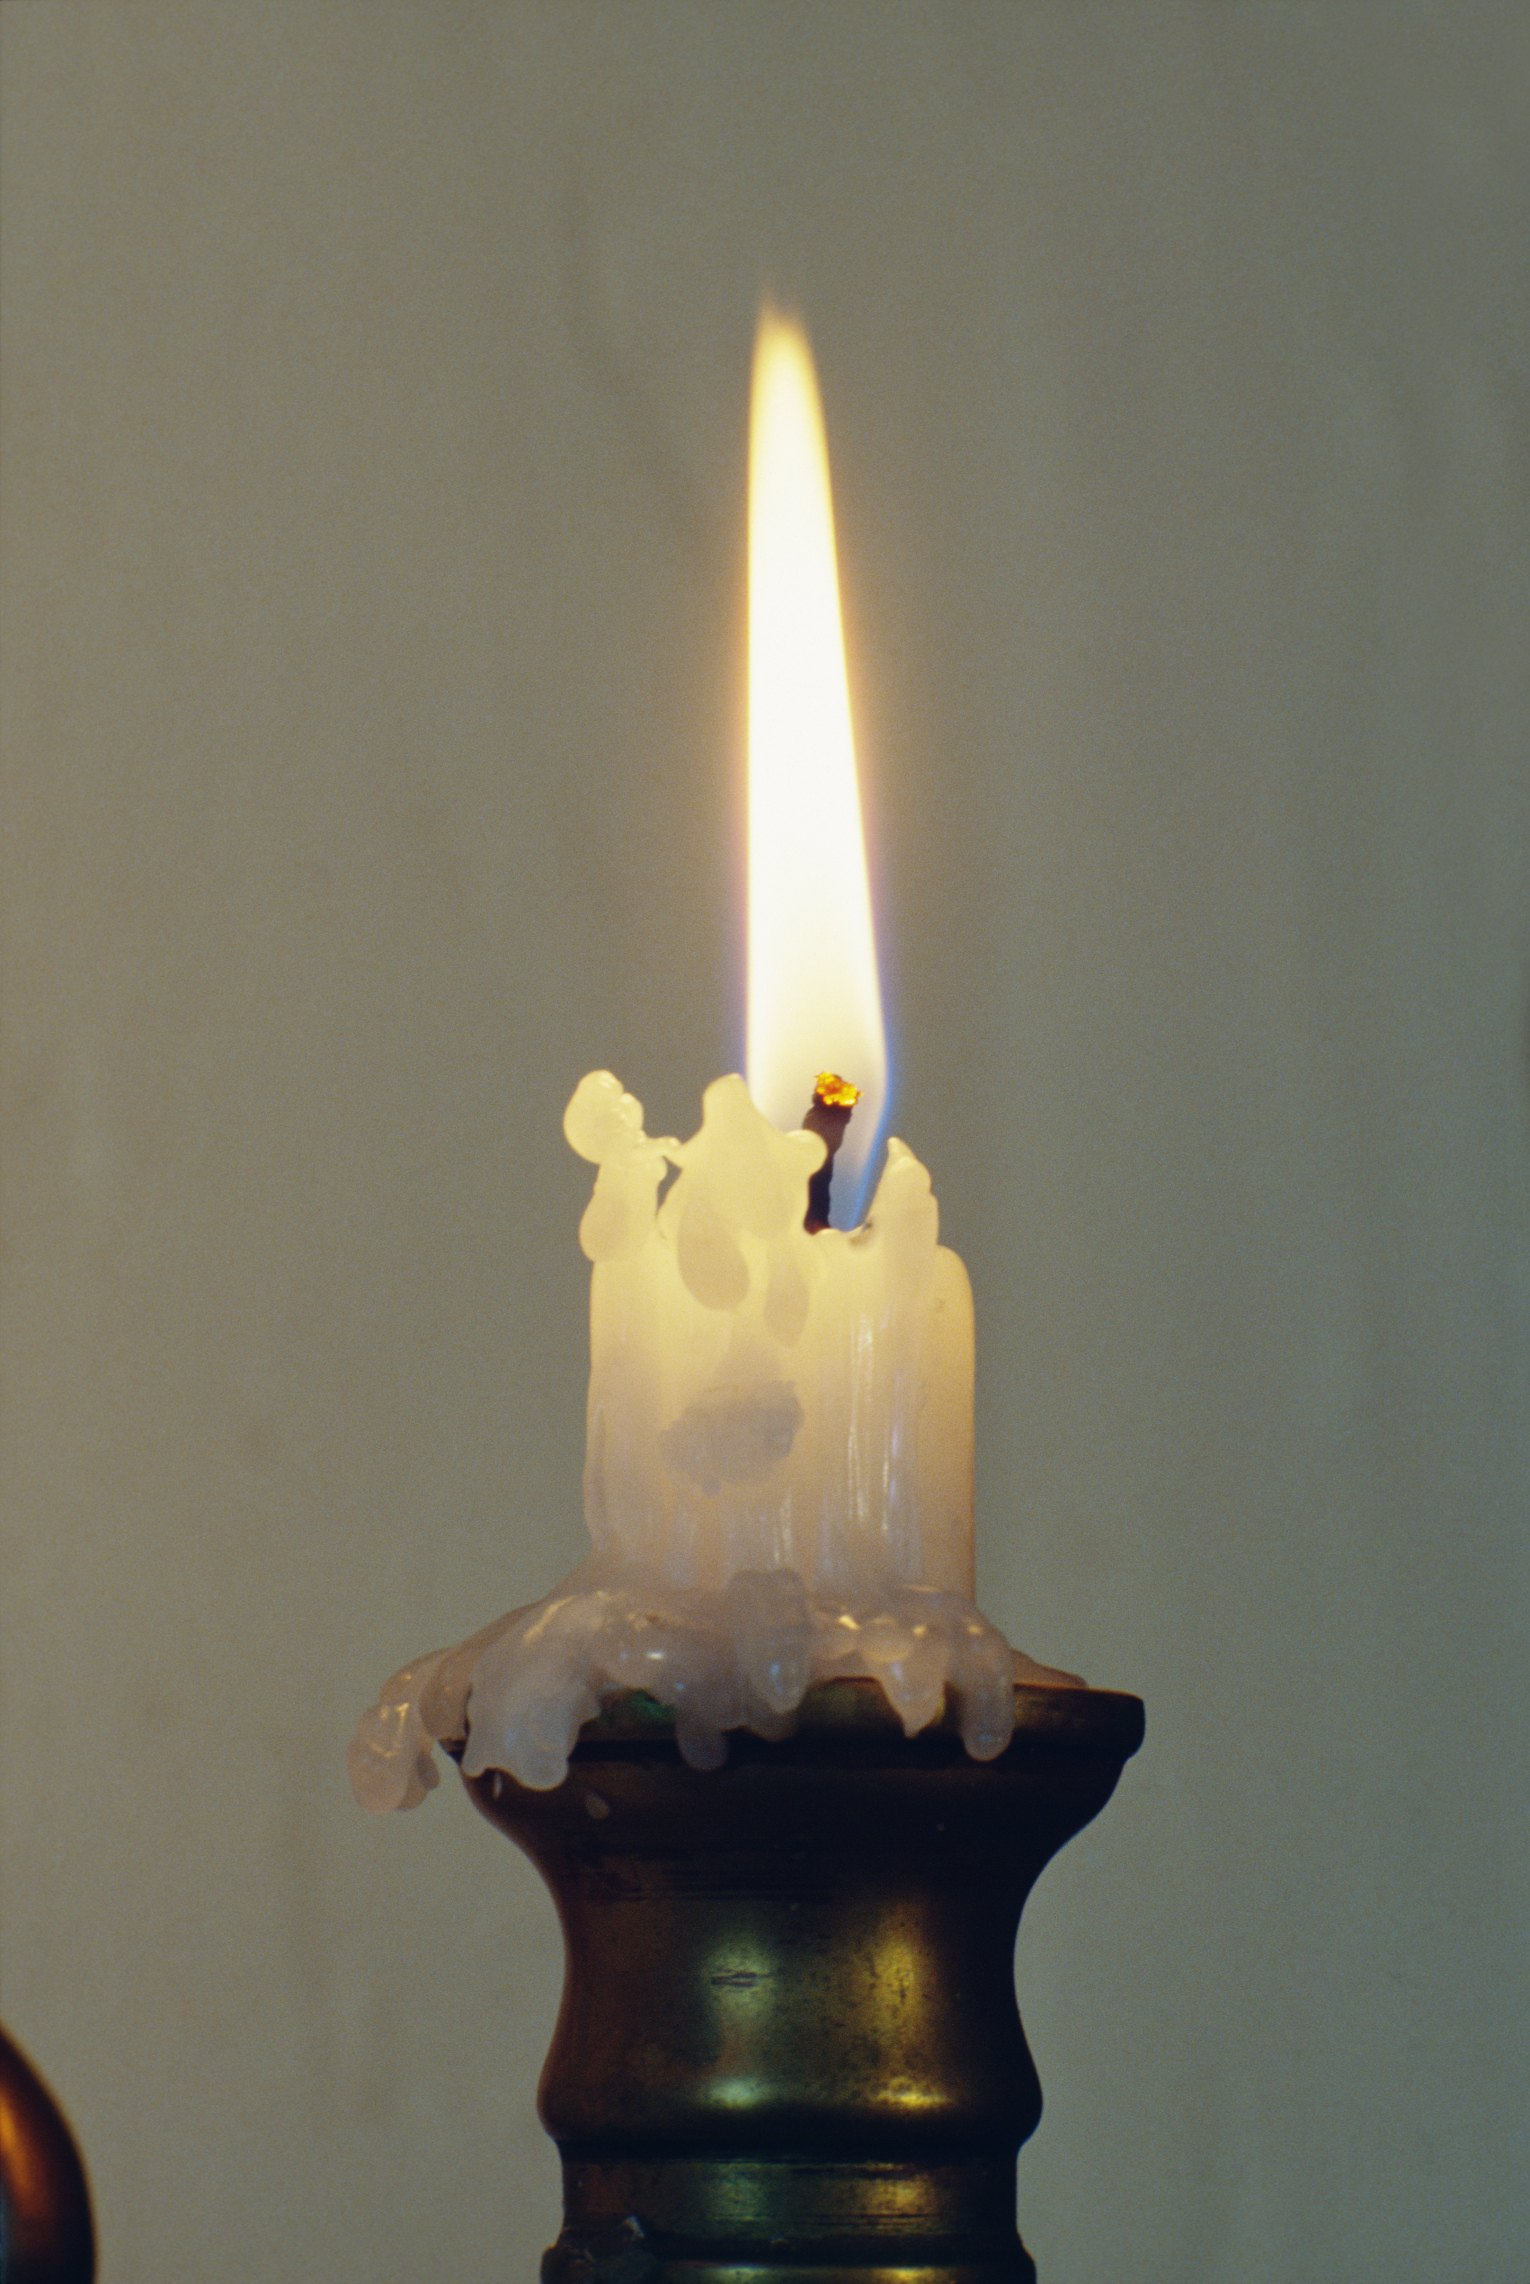 How To Easily Remove Candle Wax From Clothing